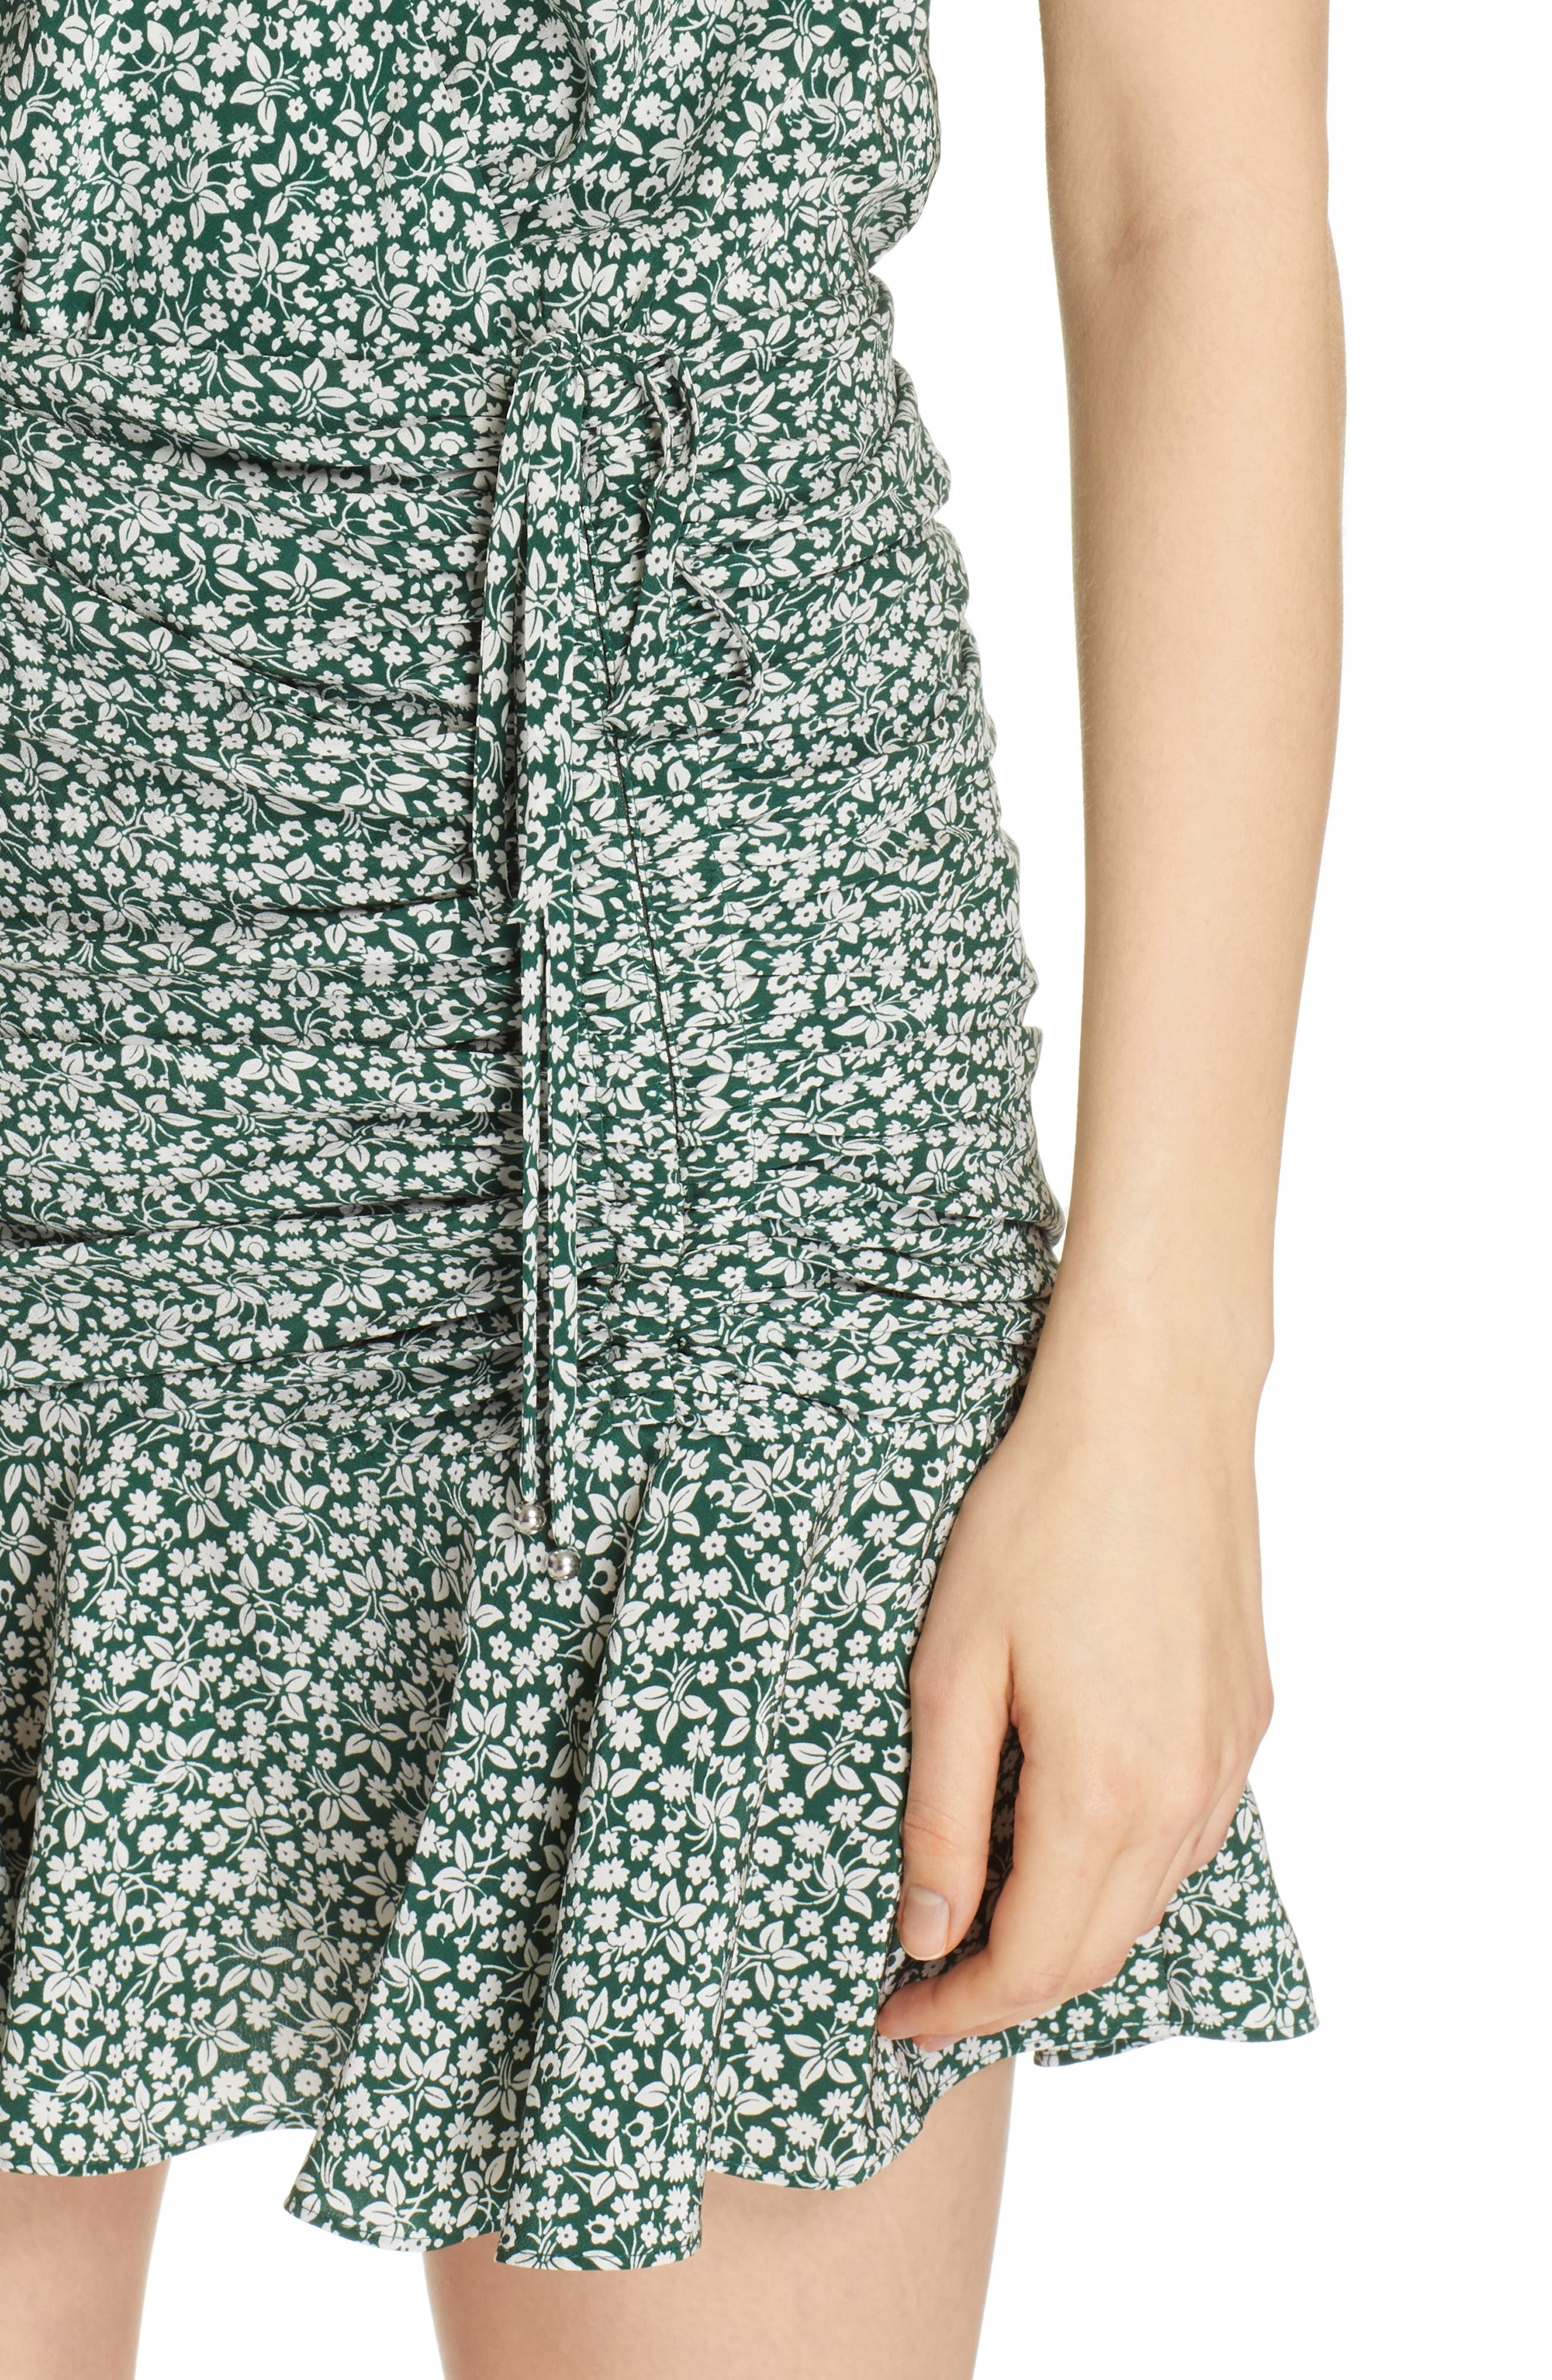 VERONICA BEARD, Marla Tie Ruched Silk Minidress, Alternate thumbnail 5, color, FOREST GREEN